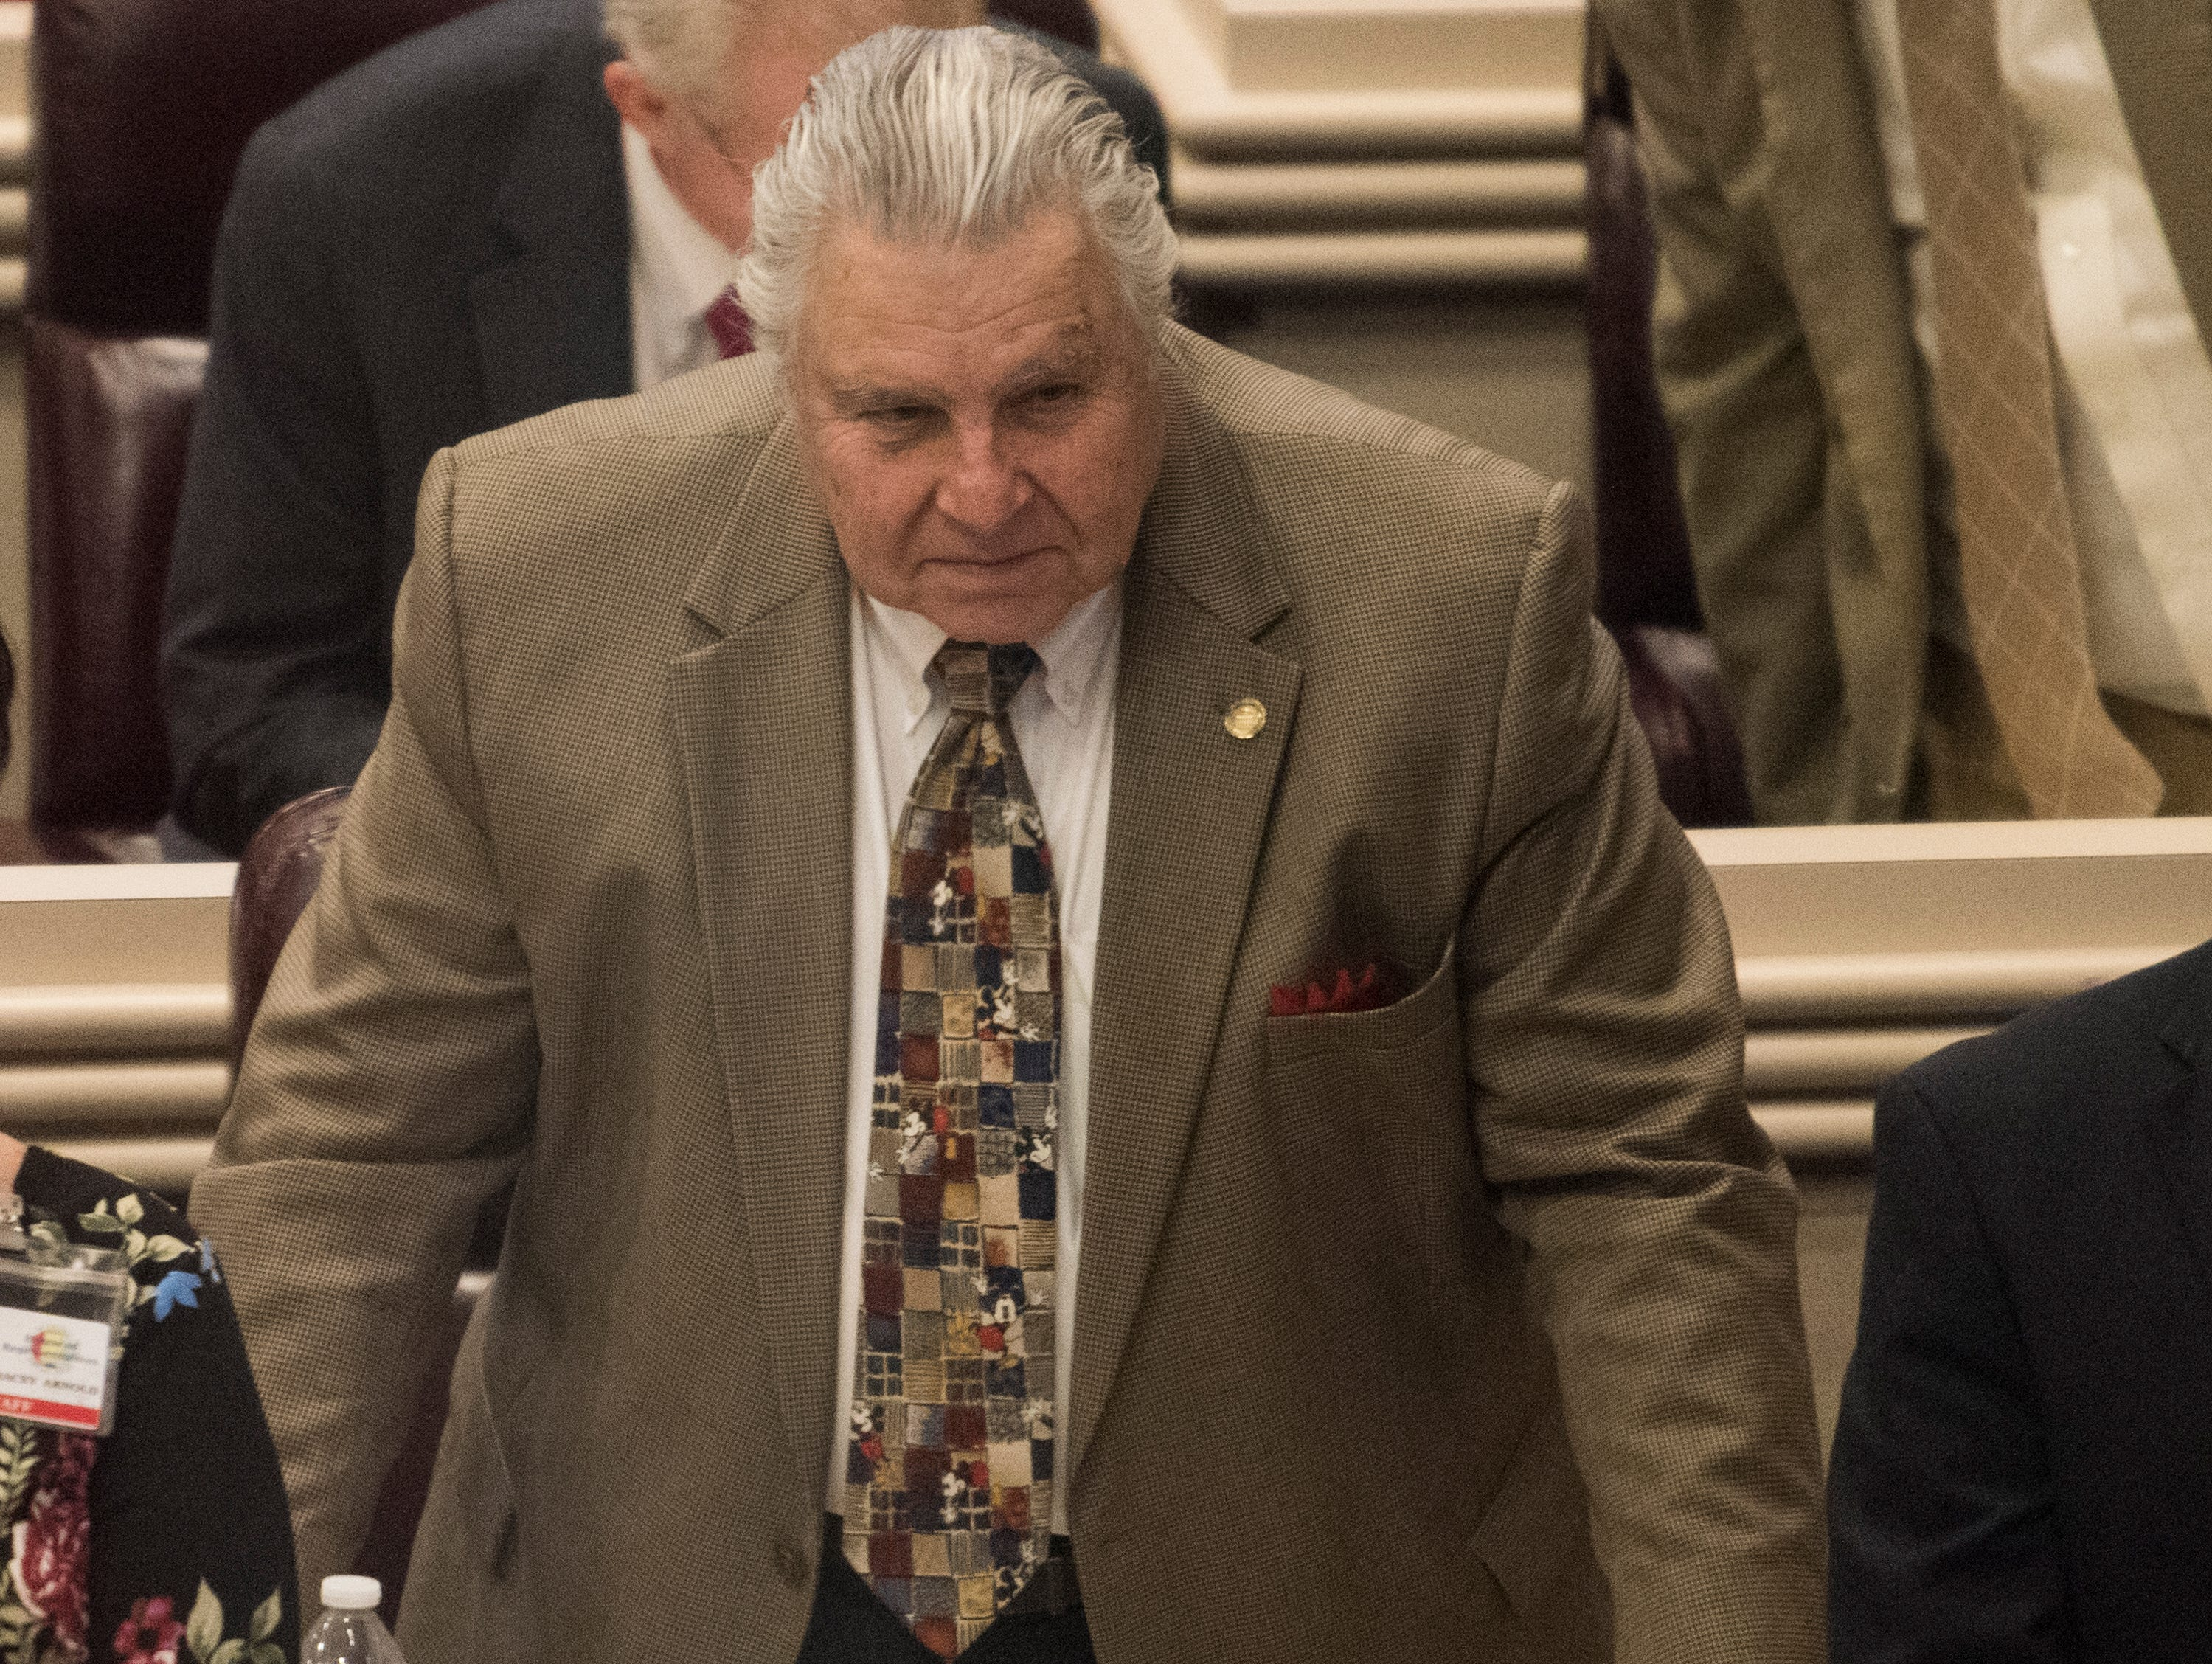 Rep. Dimitri Polizos during the 2019 Alabama Legislature's organizational session at the Alabama State House in Montgomery, Ala., on Tuesday, Jan. 8, 2019.